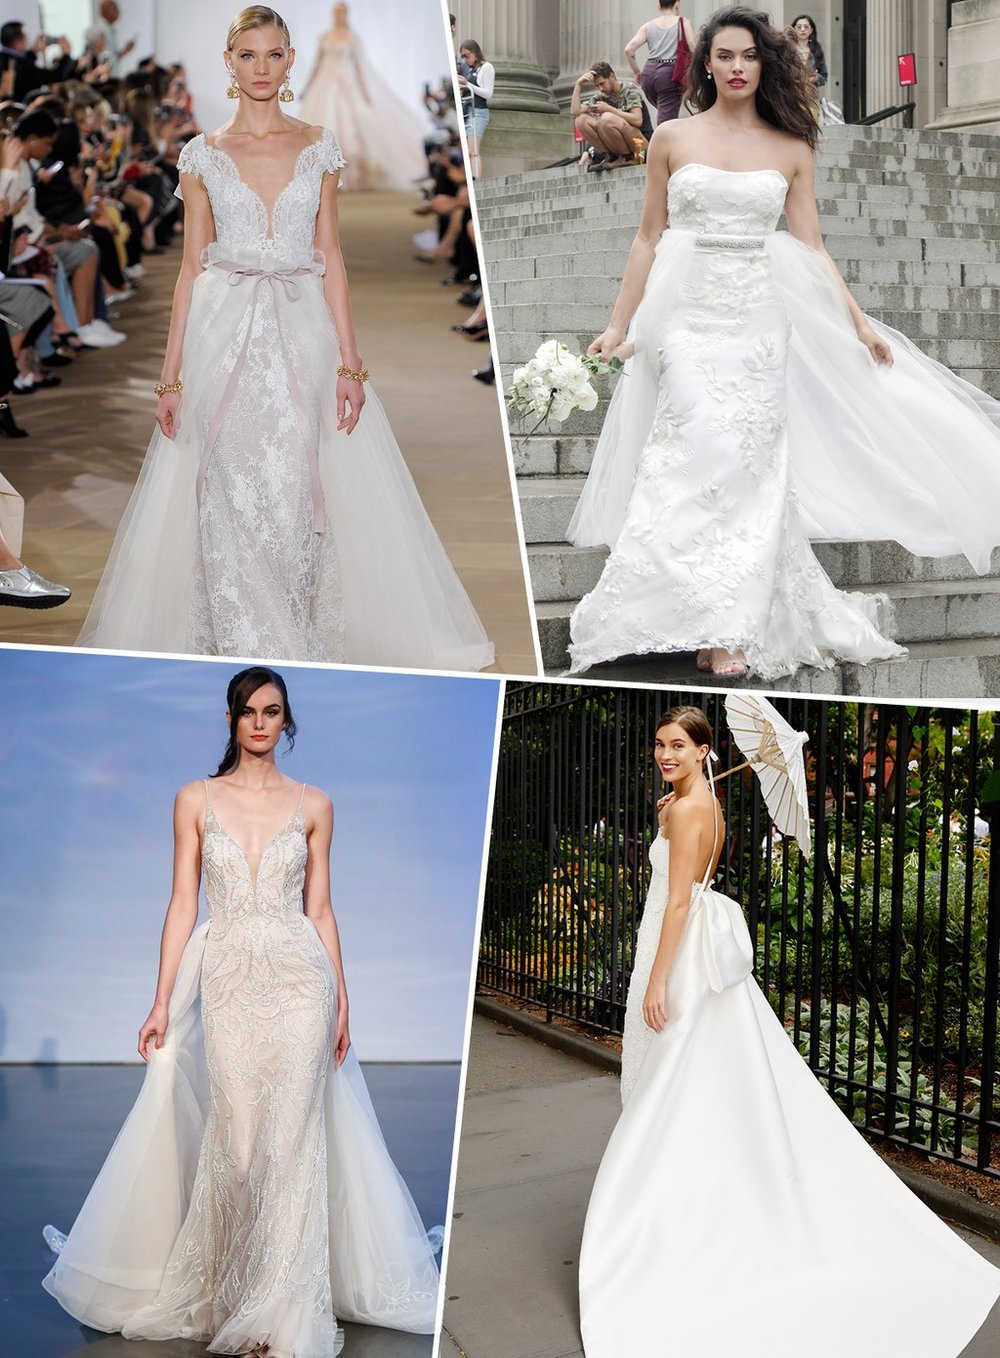 Bridalbliss.com | Bridalbliss.com | 2019 Wedding Gown Trends | Martha Stewart Weddings